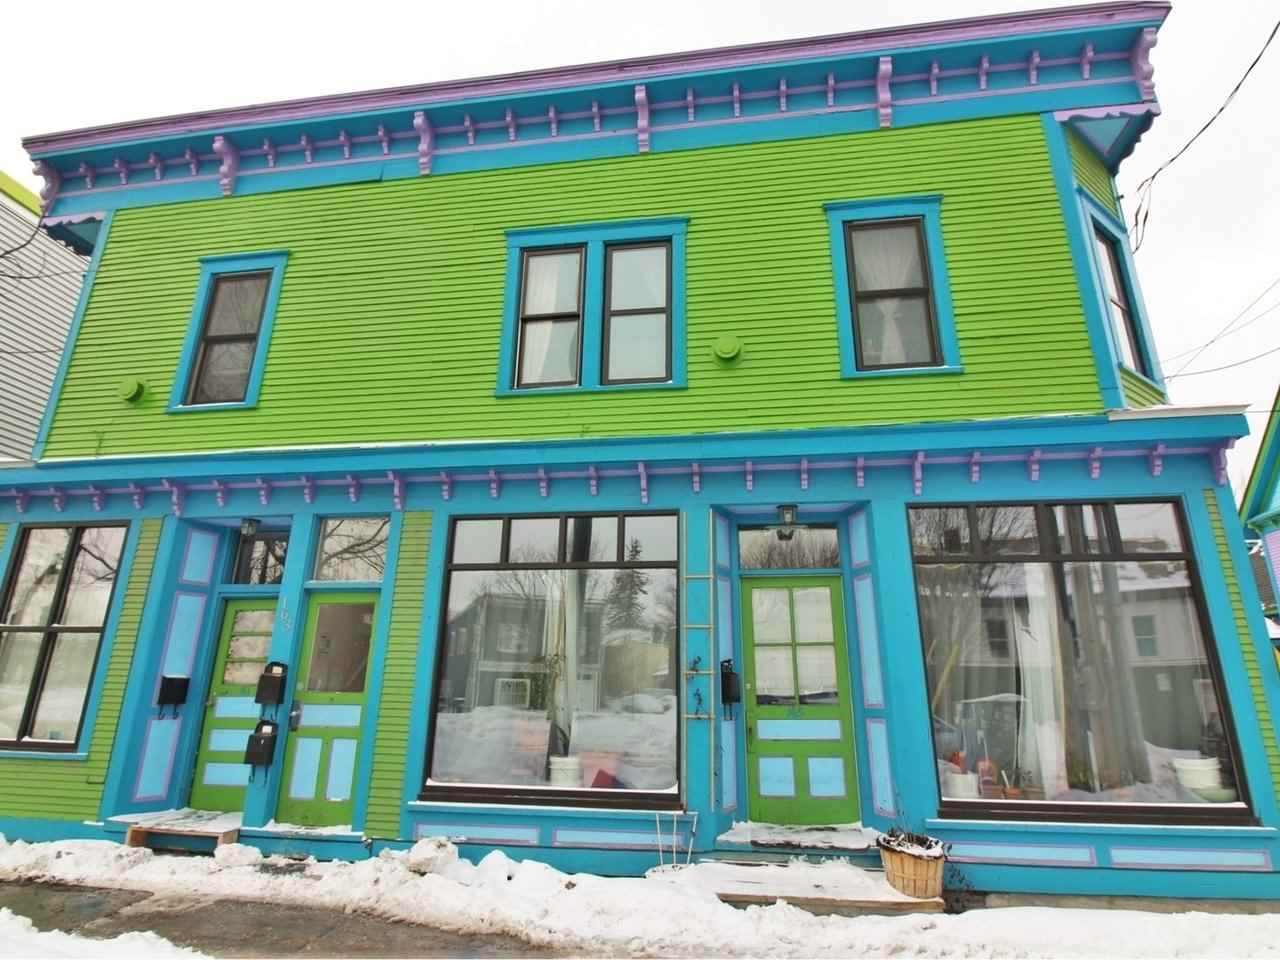 Located in the heart of the historic Old North End, this converted turn of the century store front offers four stunning apartments with updated kitchens, hardwood floors, stainless appliances and remodeled bathrooms. Configured with two studios, a 1 Bedroom and a 3 bedroom apartment with off-street parking and close to hospitals, colleges, and downtown Burlington.